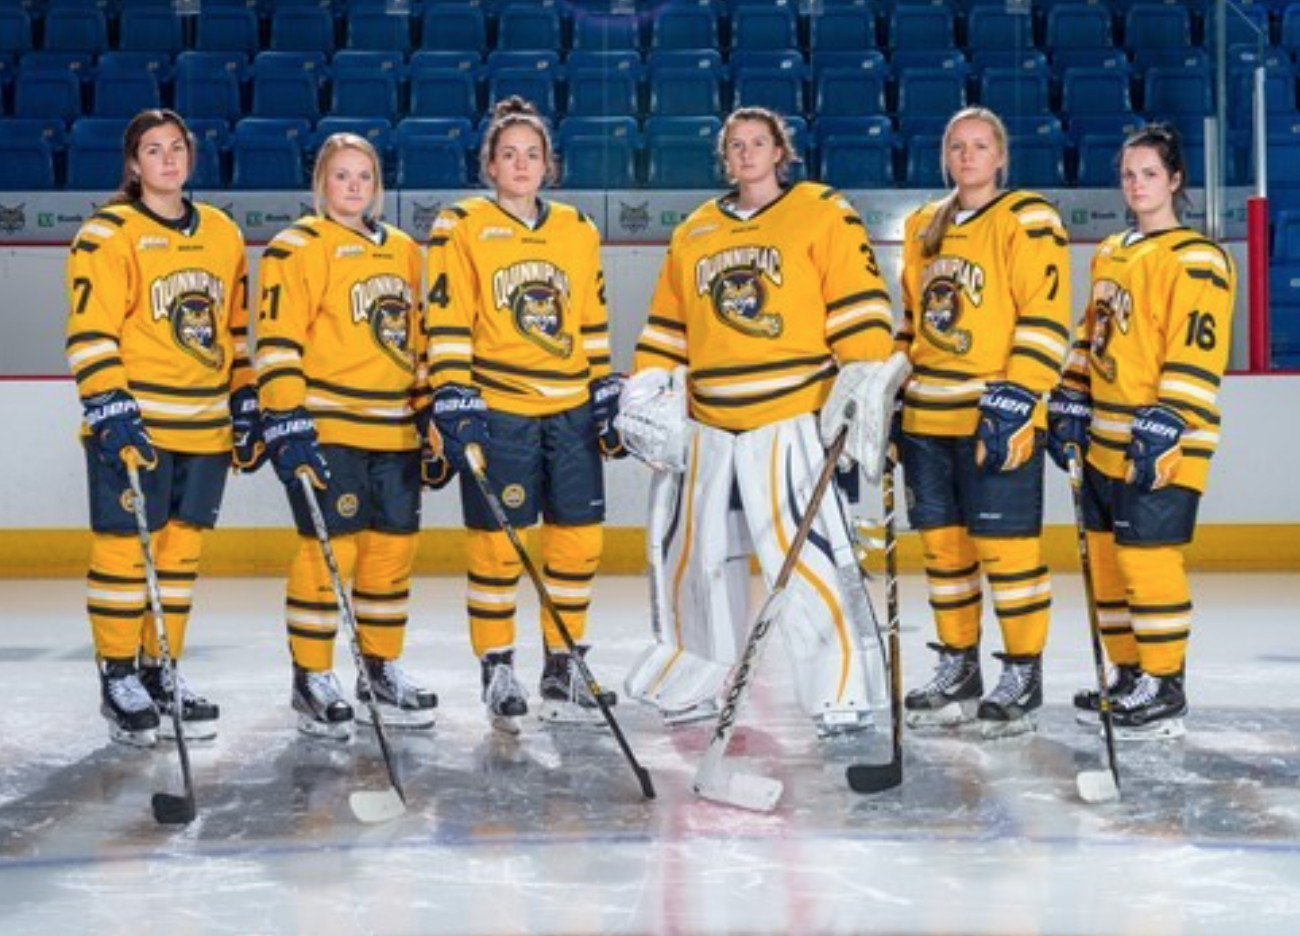 Meet the freshman: The new faces of the 2016-2017 Quinnipiac women's ice hockey team